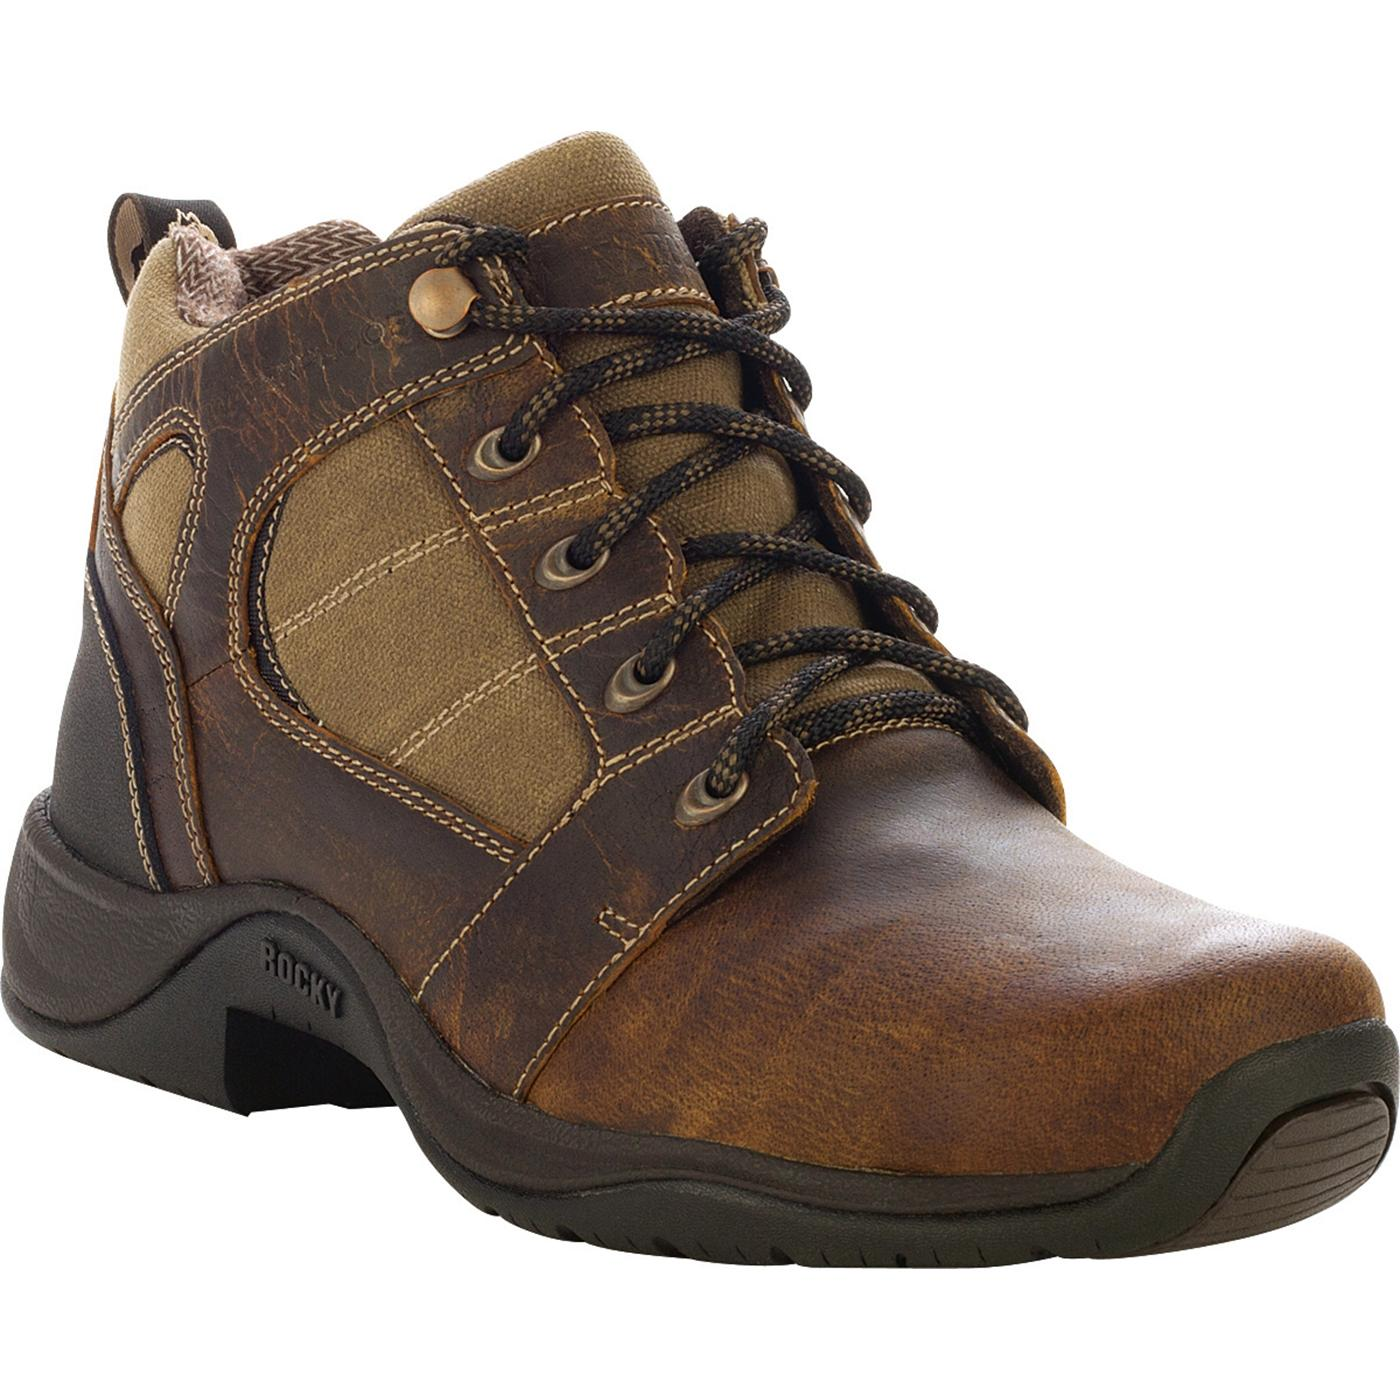 Women Snakeproof And Waterproof Shoes